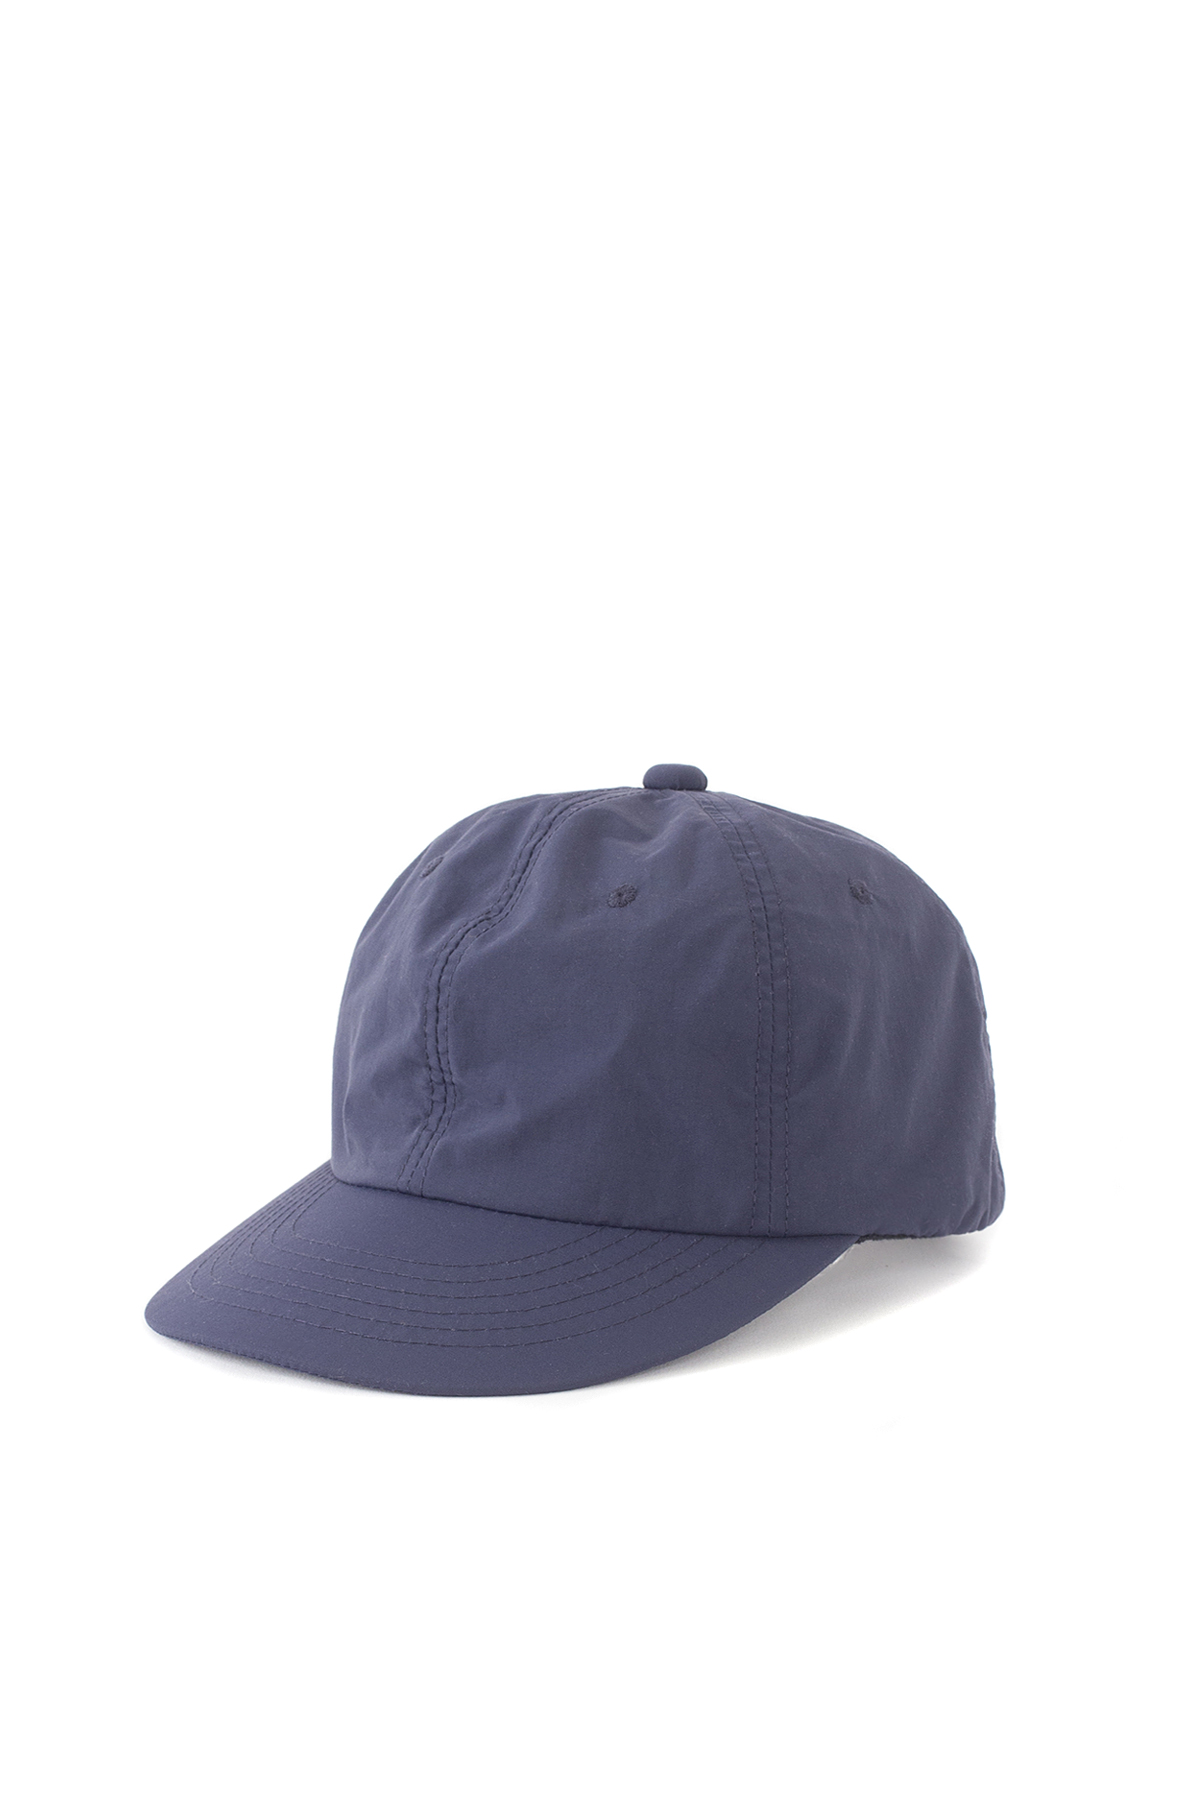 forumwear : Supplex Ball Cap (Navy)